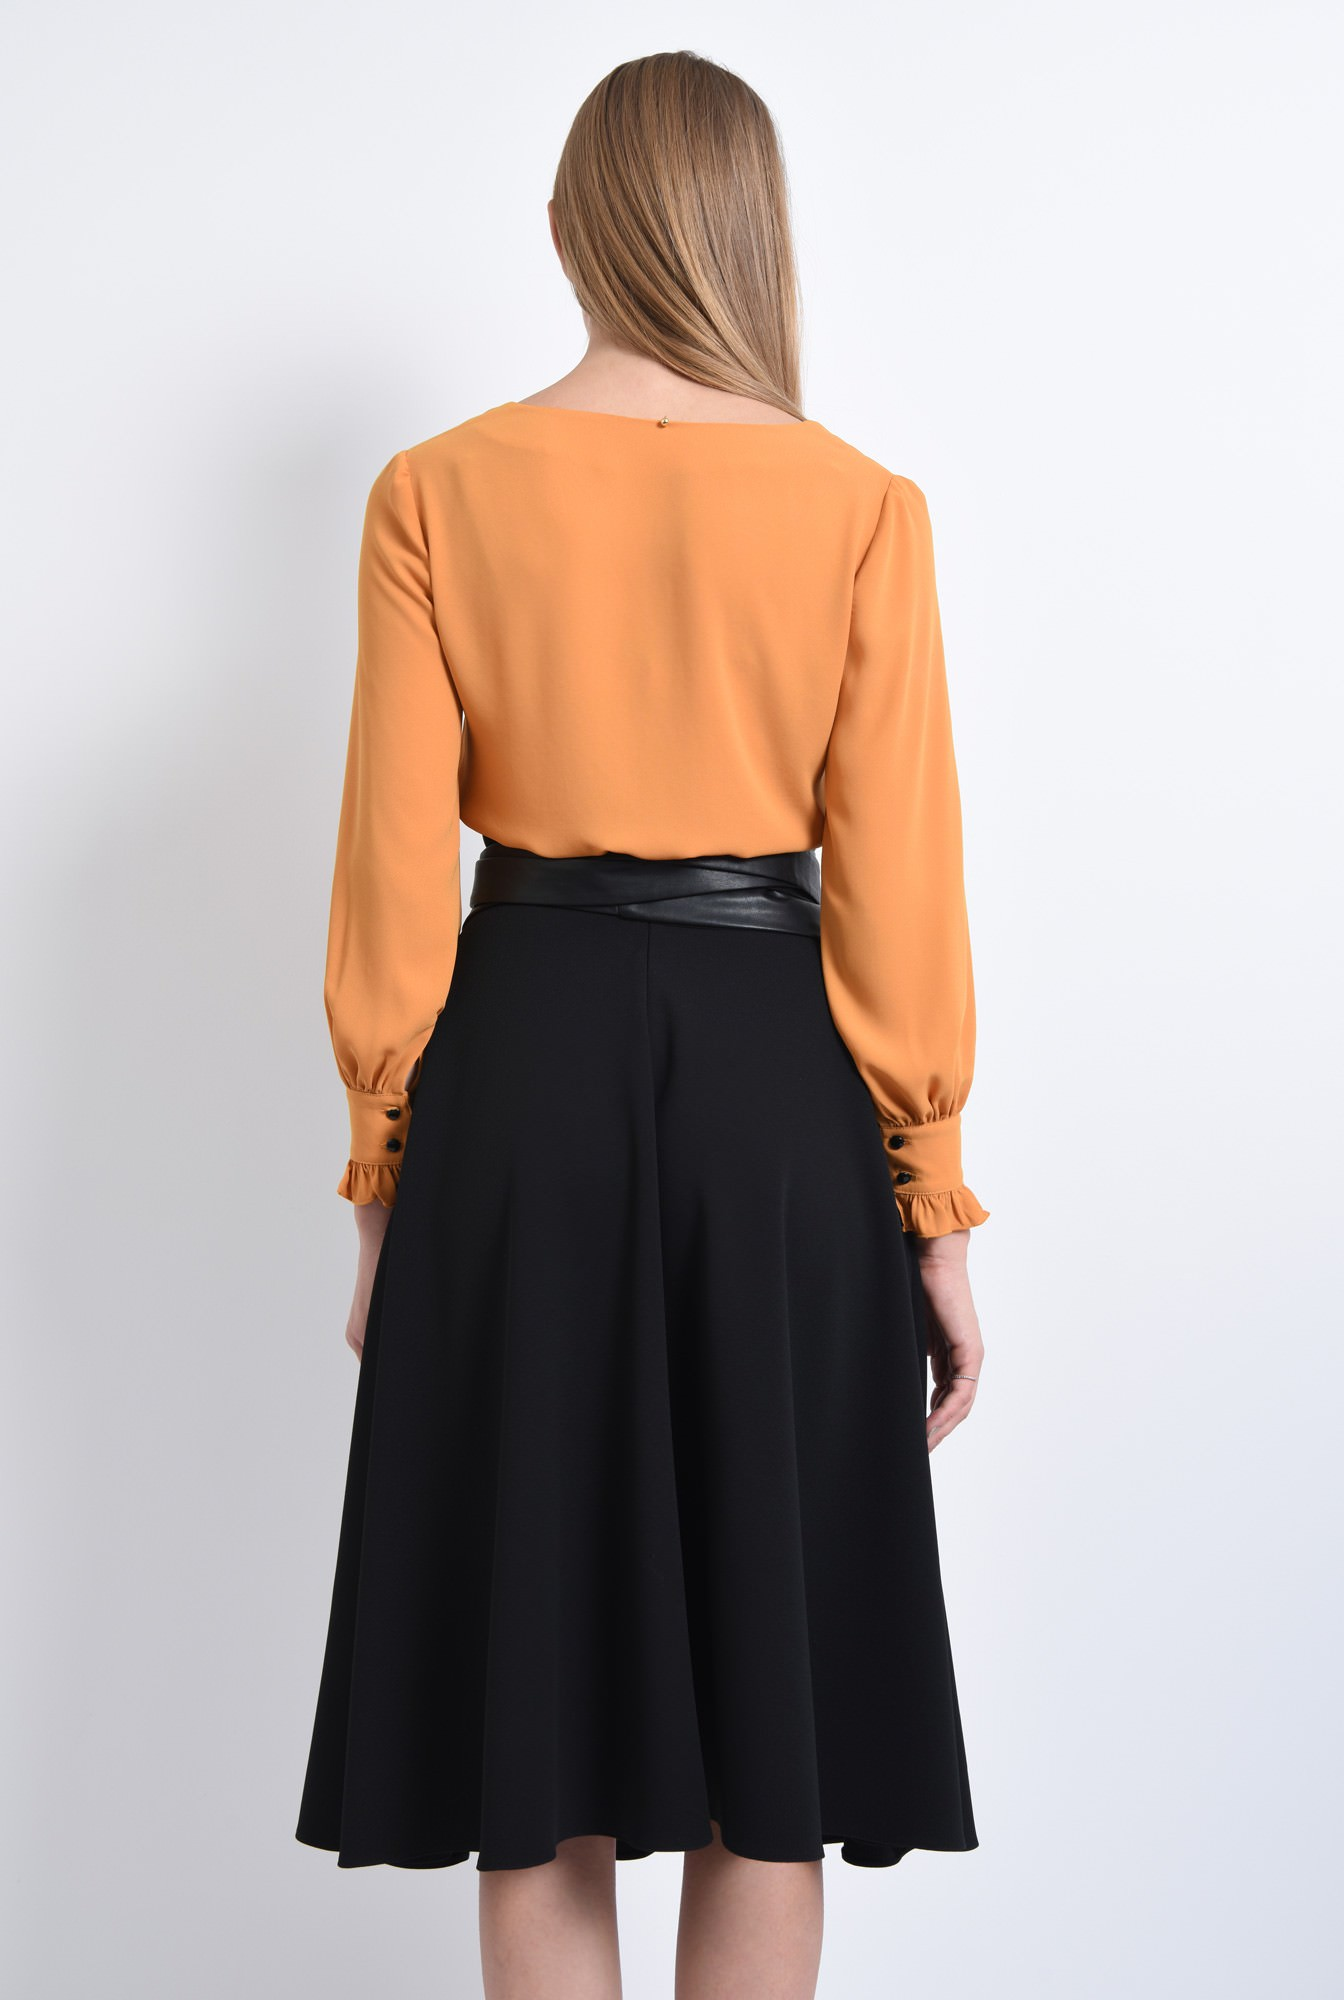 1 - BLUZA OFFICE BL 292-MUSTAR